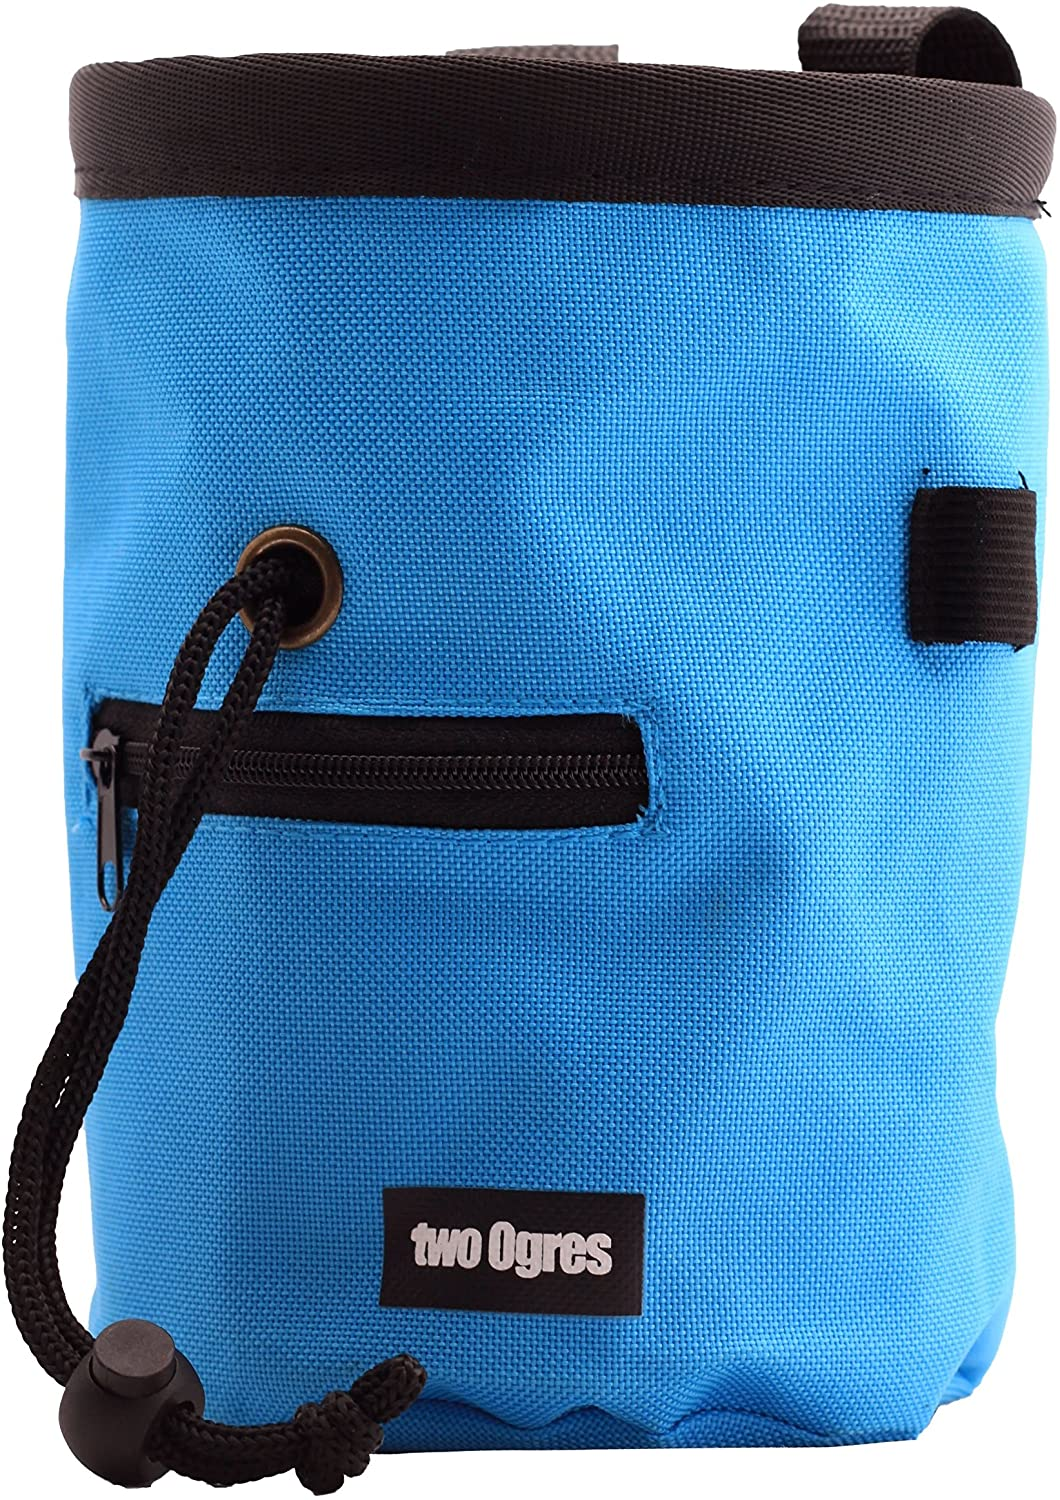 two Ogres Essential-Z Climbing Chalk Bag with Belt and Zippered Pocket for Climbing, Gymnastics, Weight Lifting